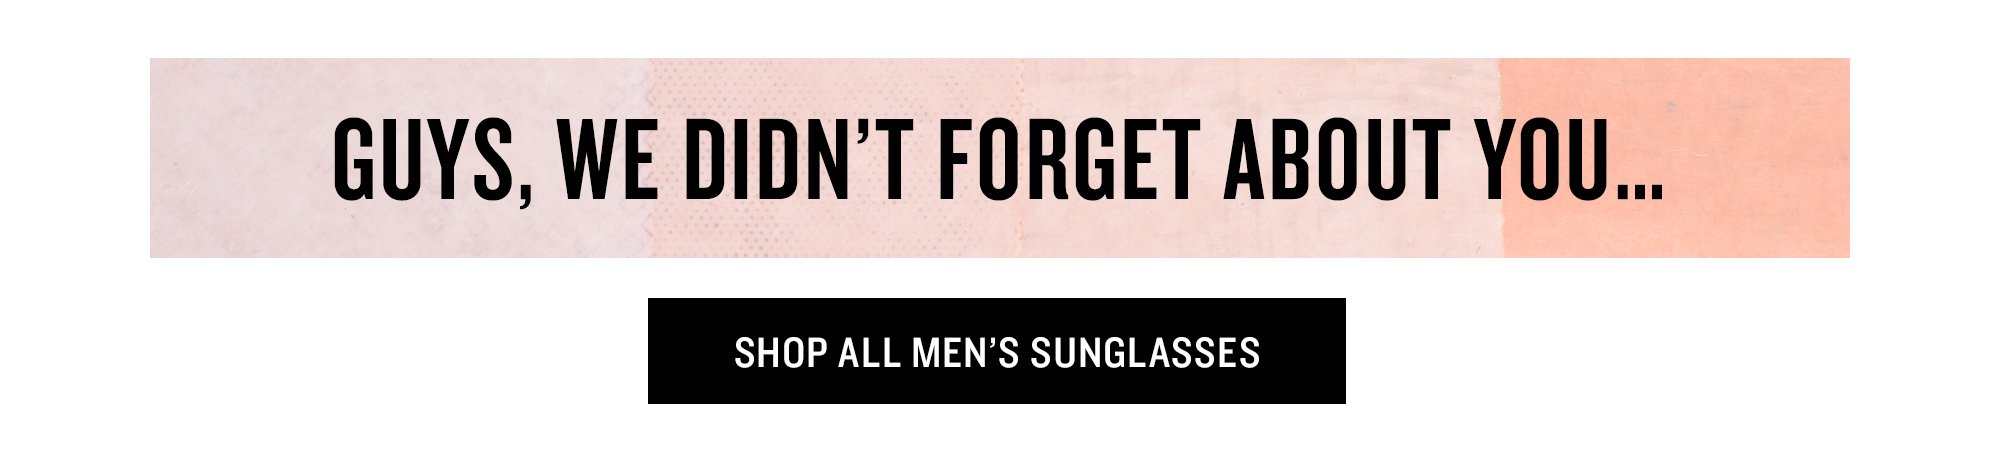 All Men's Sunglasses